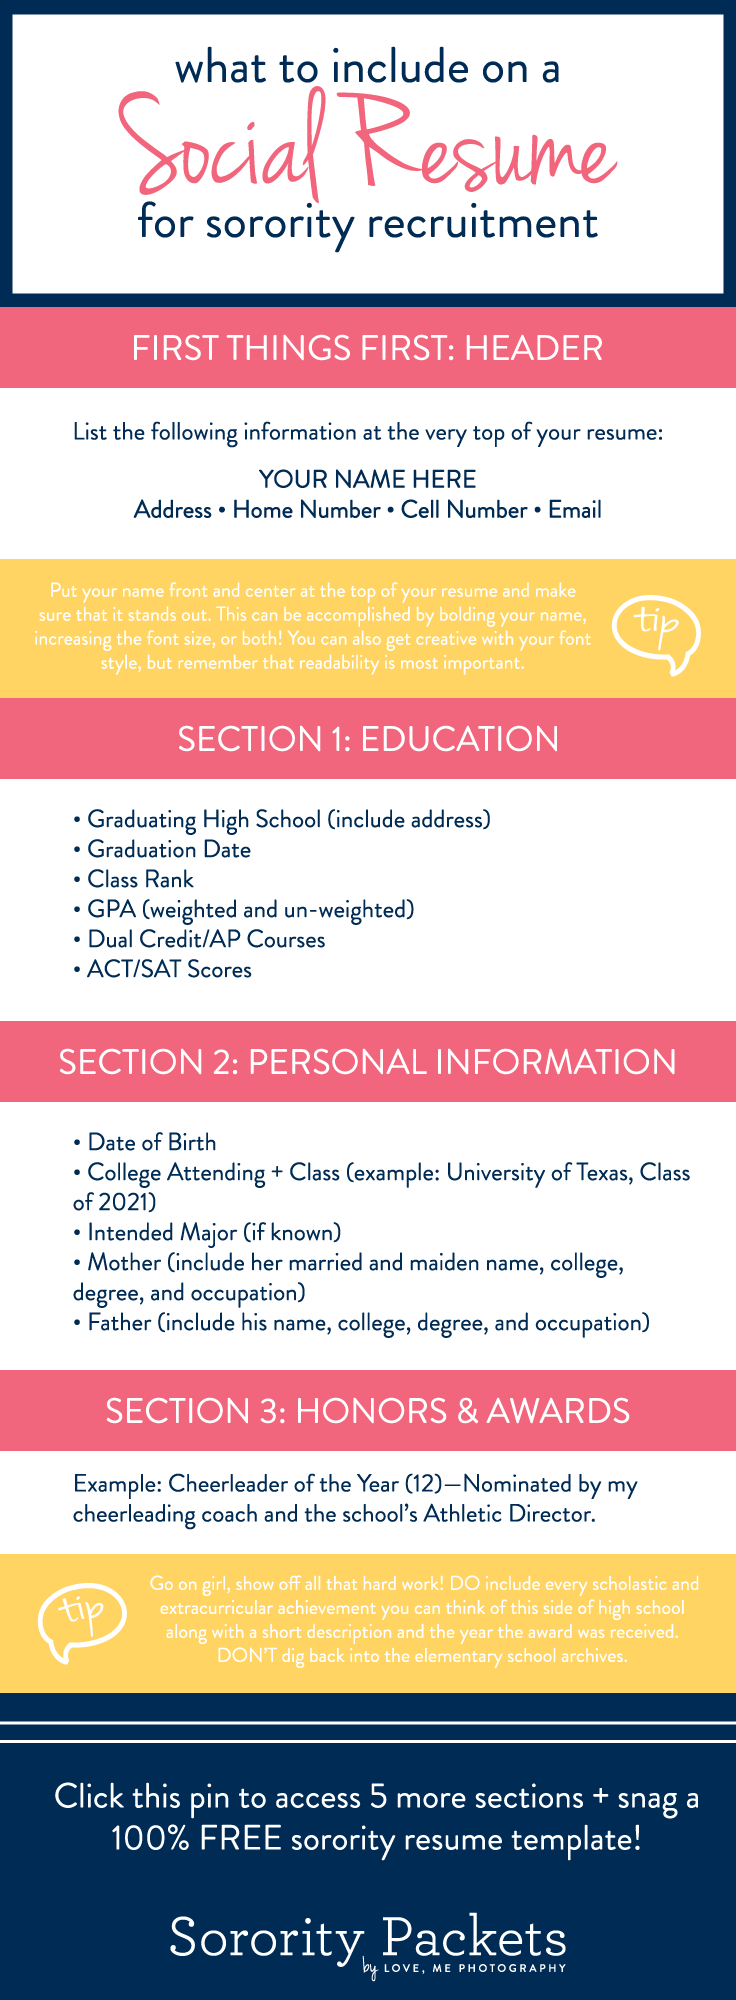 What To Include On A Sorority Resume Sorority College And Dorm - Free rush resume template